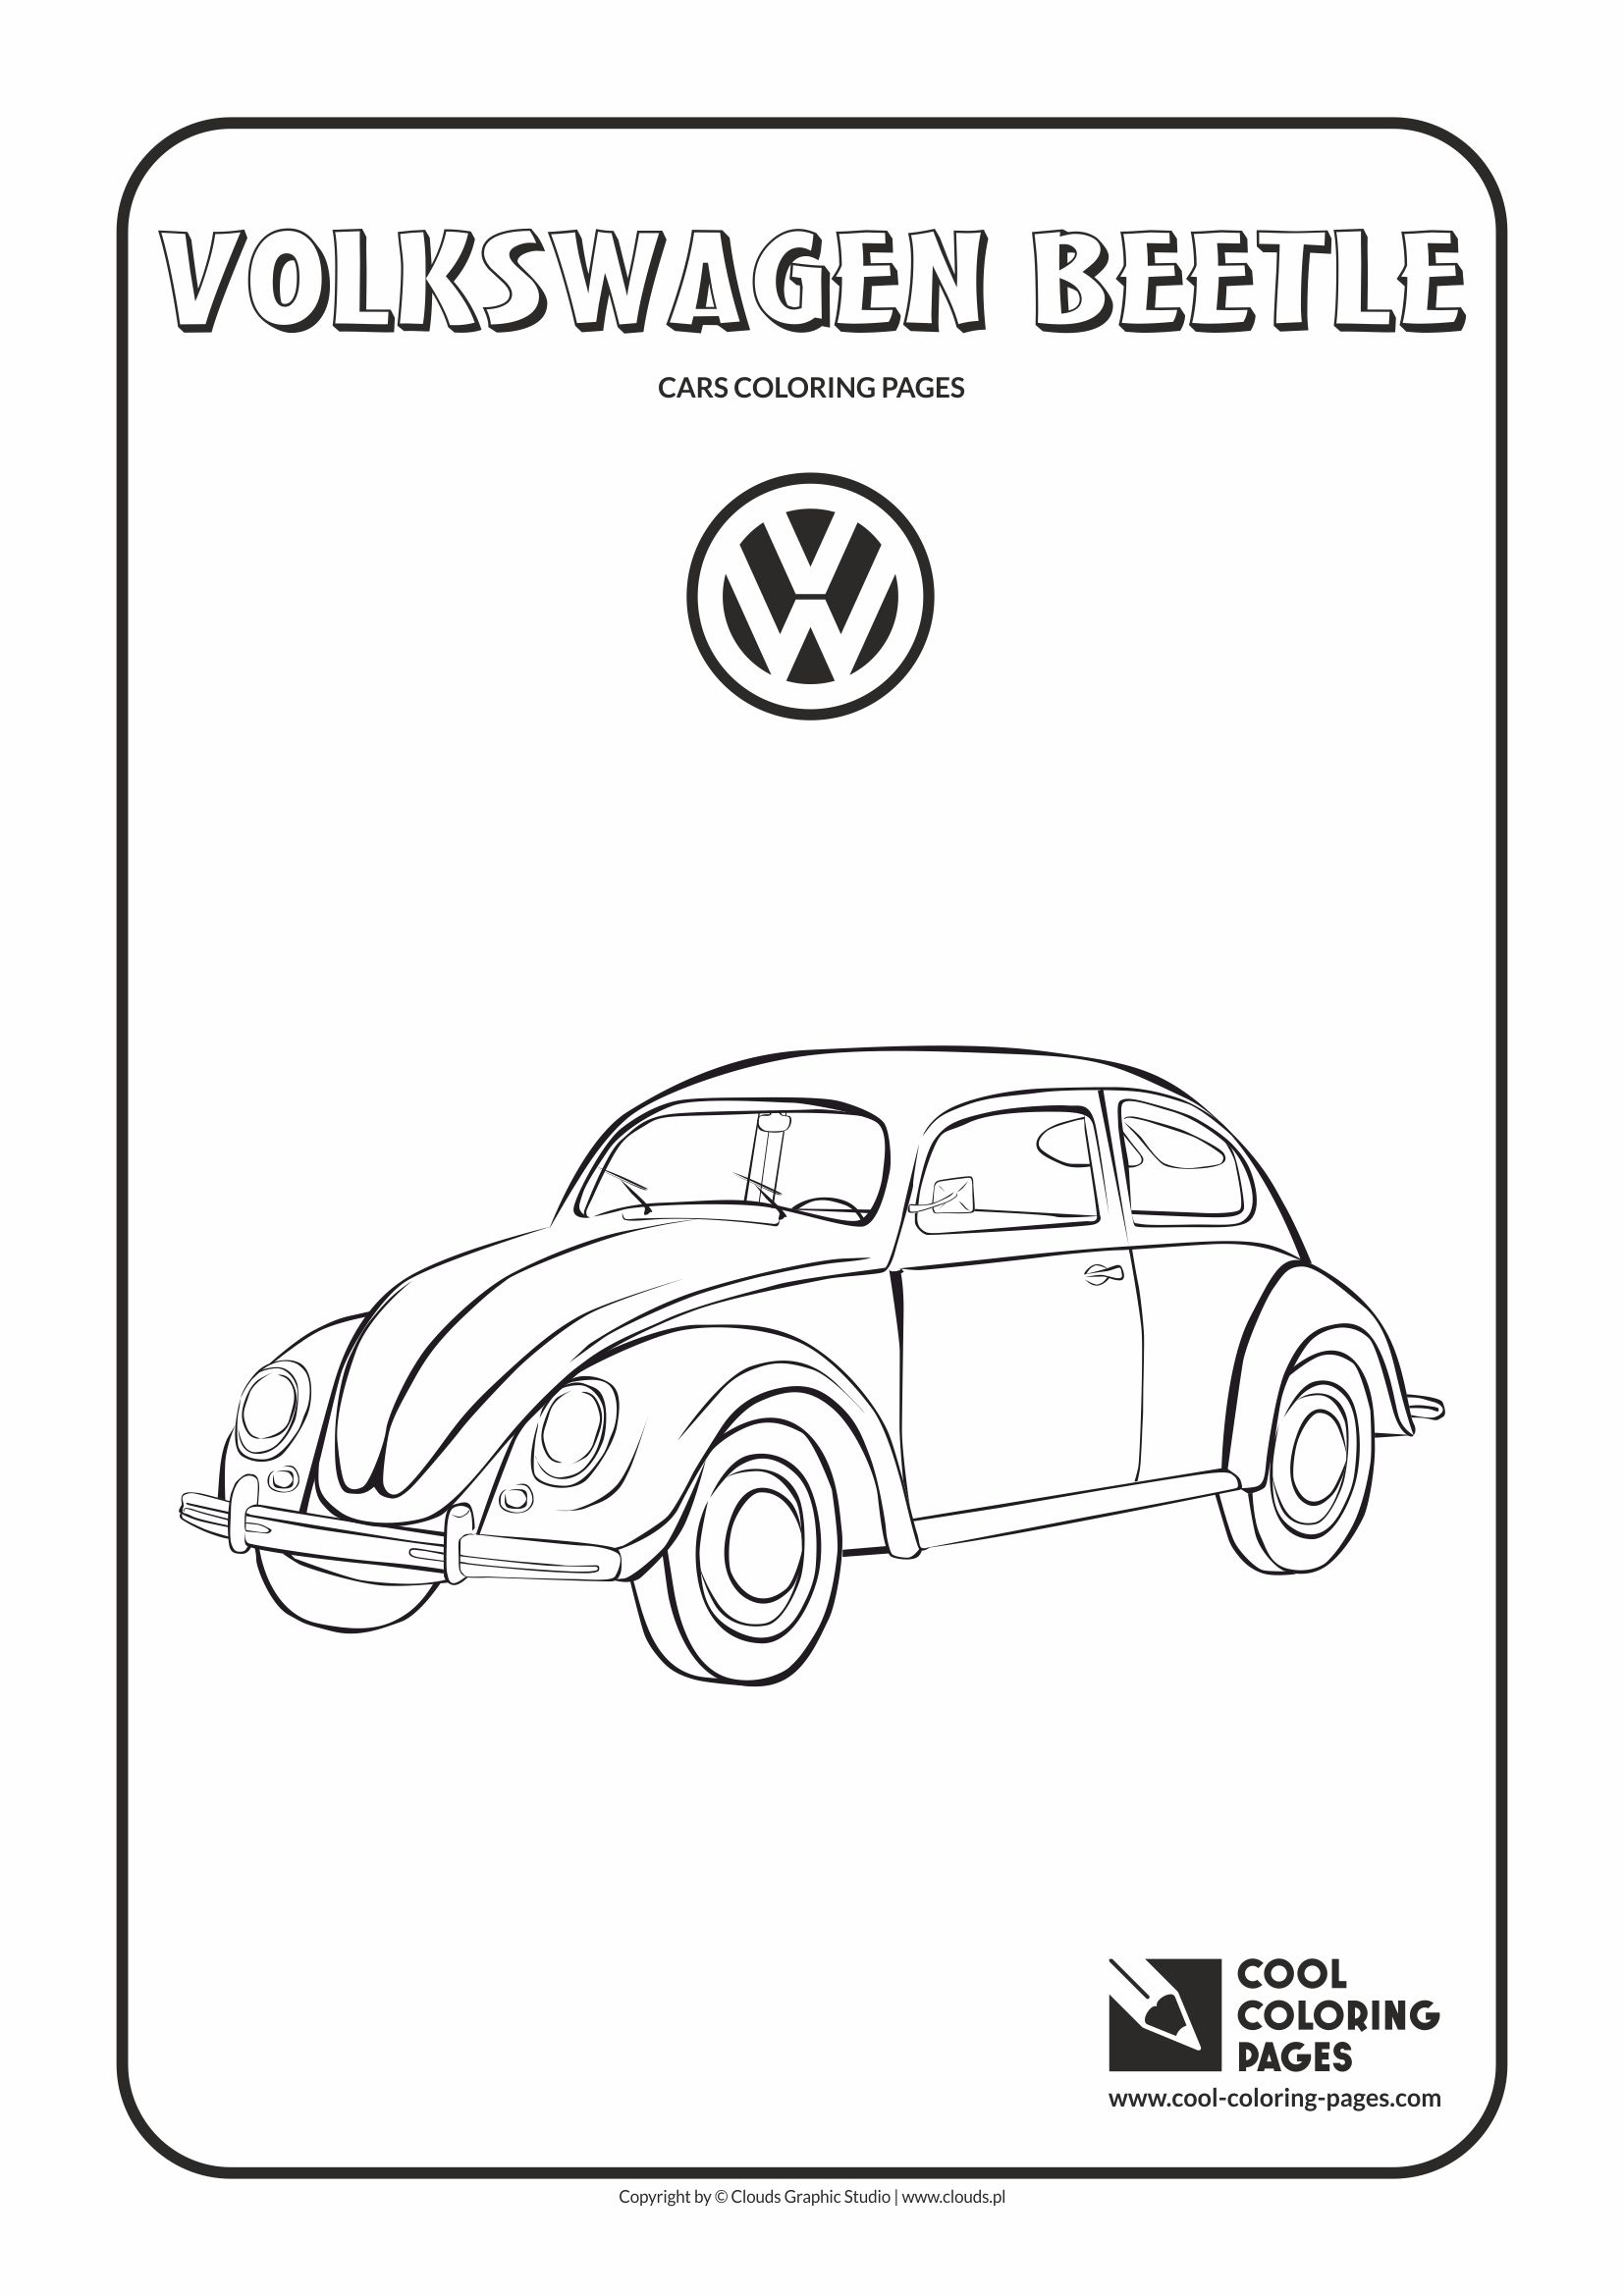 Cool Coloring Pages Volkswagen